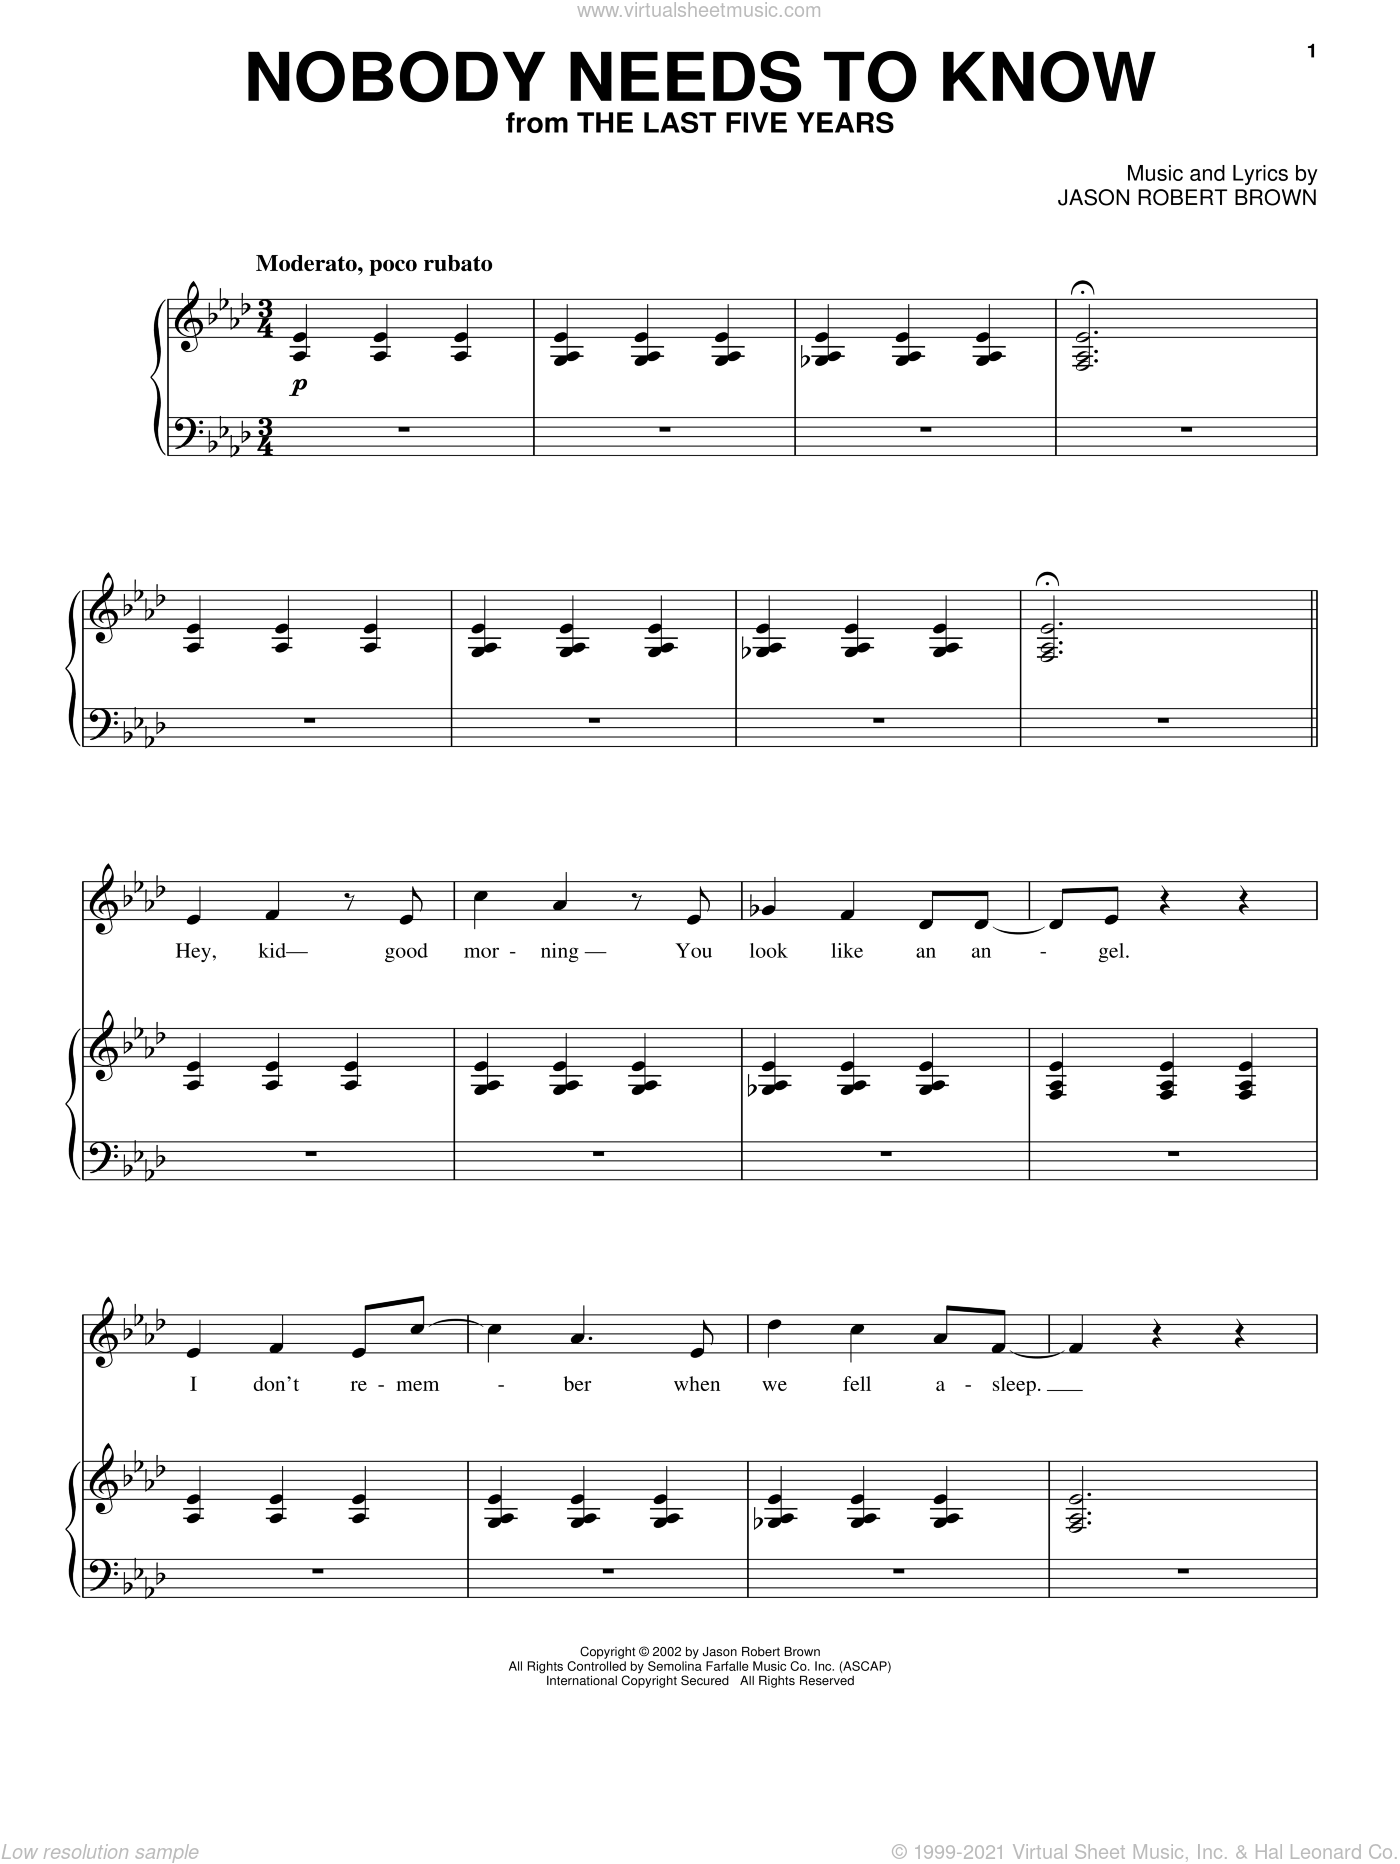 Nobody Needs To Know (from The Last 5 Years) sheet music for voice, piano or guitar by Jason Robert Brown and The Last Five Years (Musical), intermediate skill level